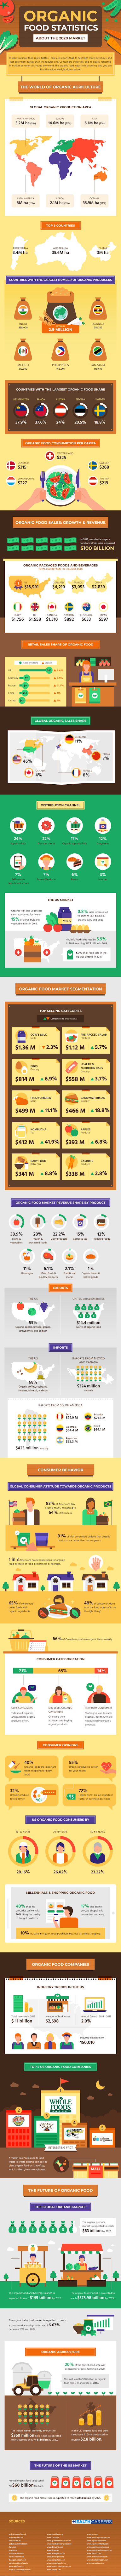 Organic Food Statistics About the 2020 Market #infographic